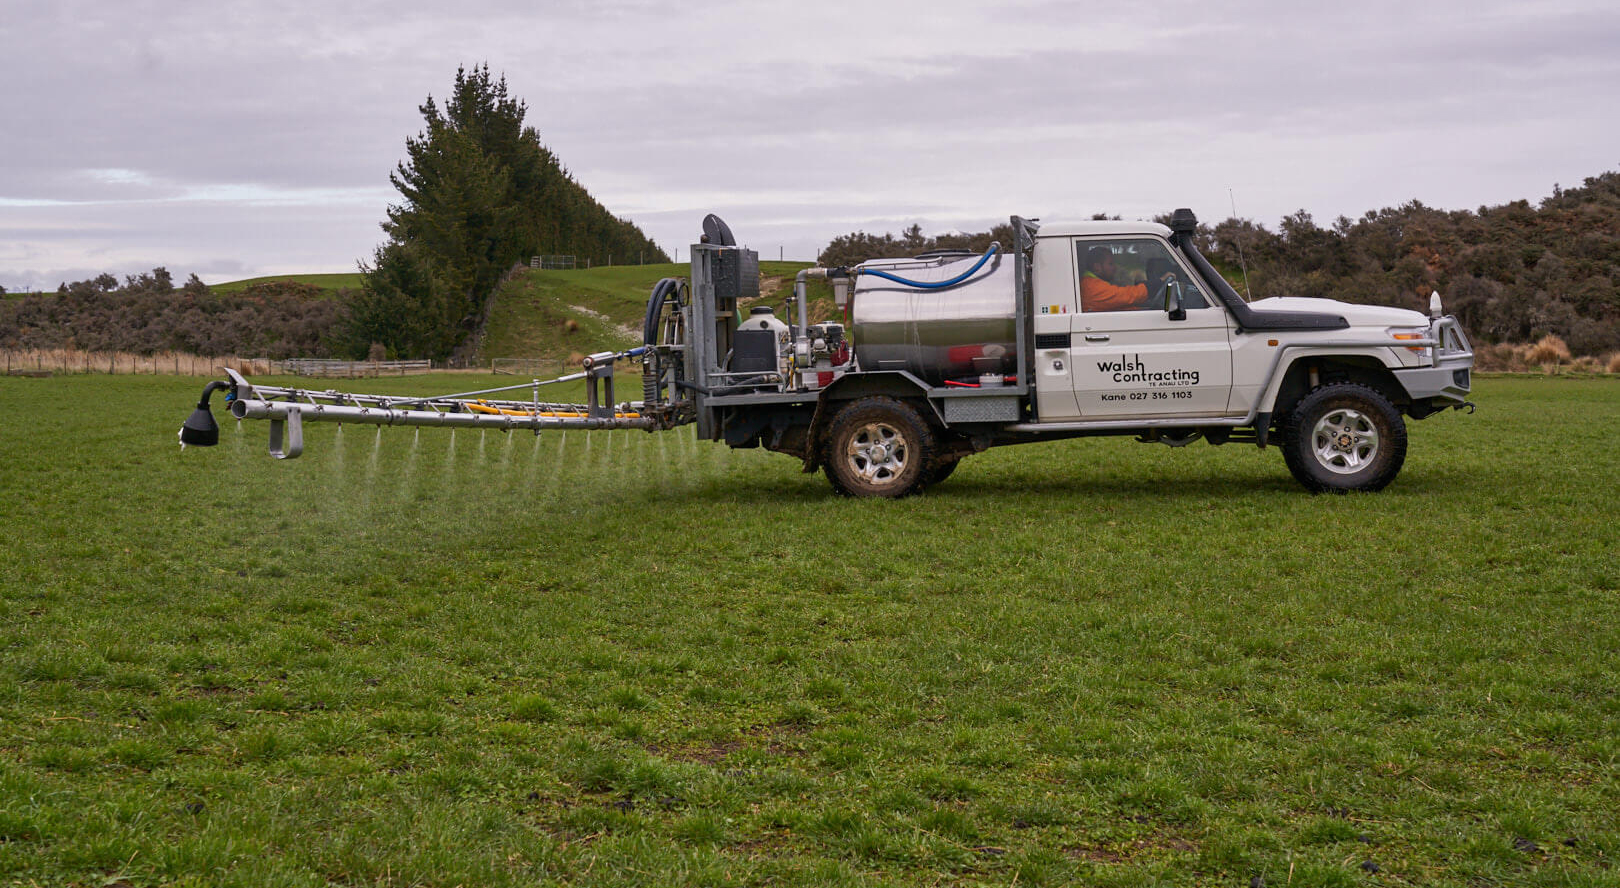 Walsh Contracting Truck spraying paddock with controlled booms